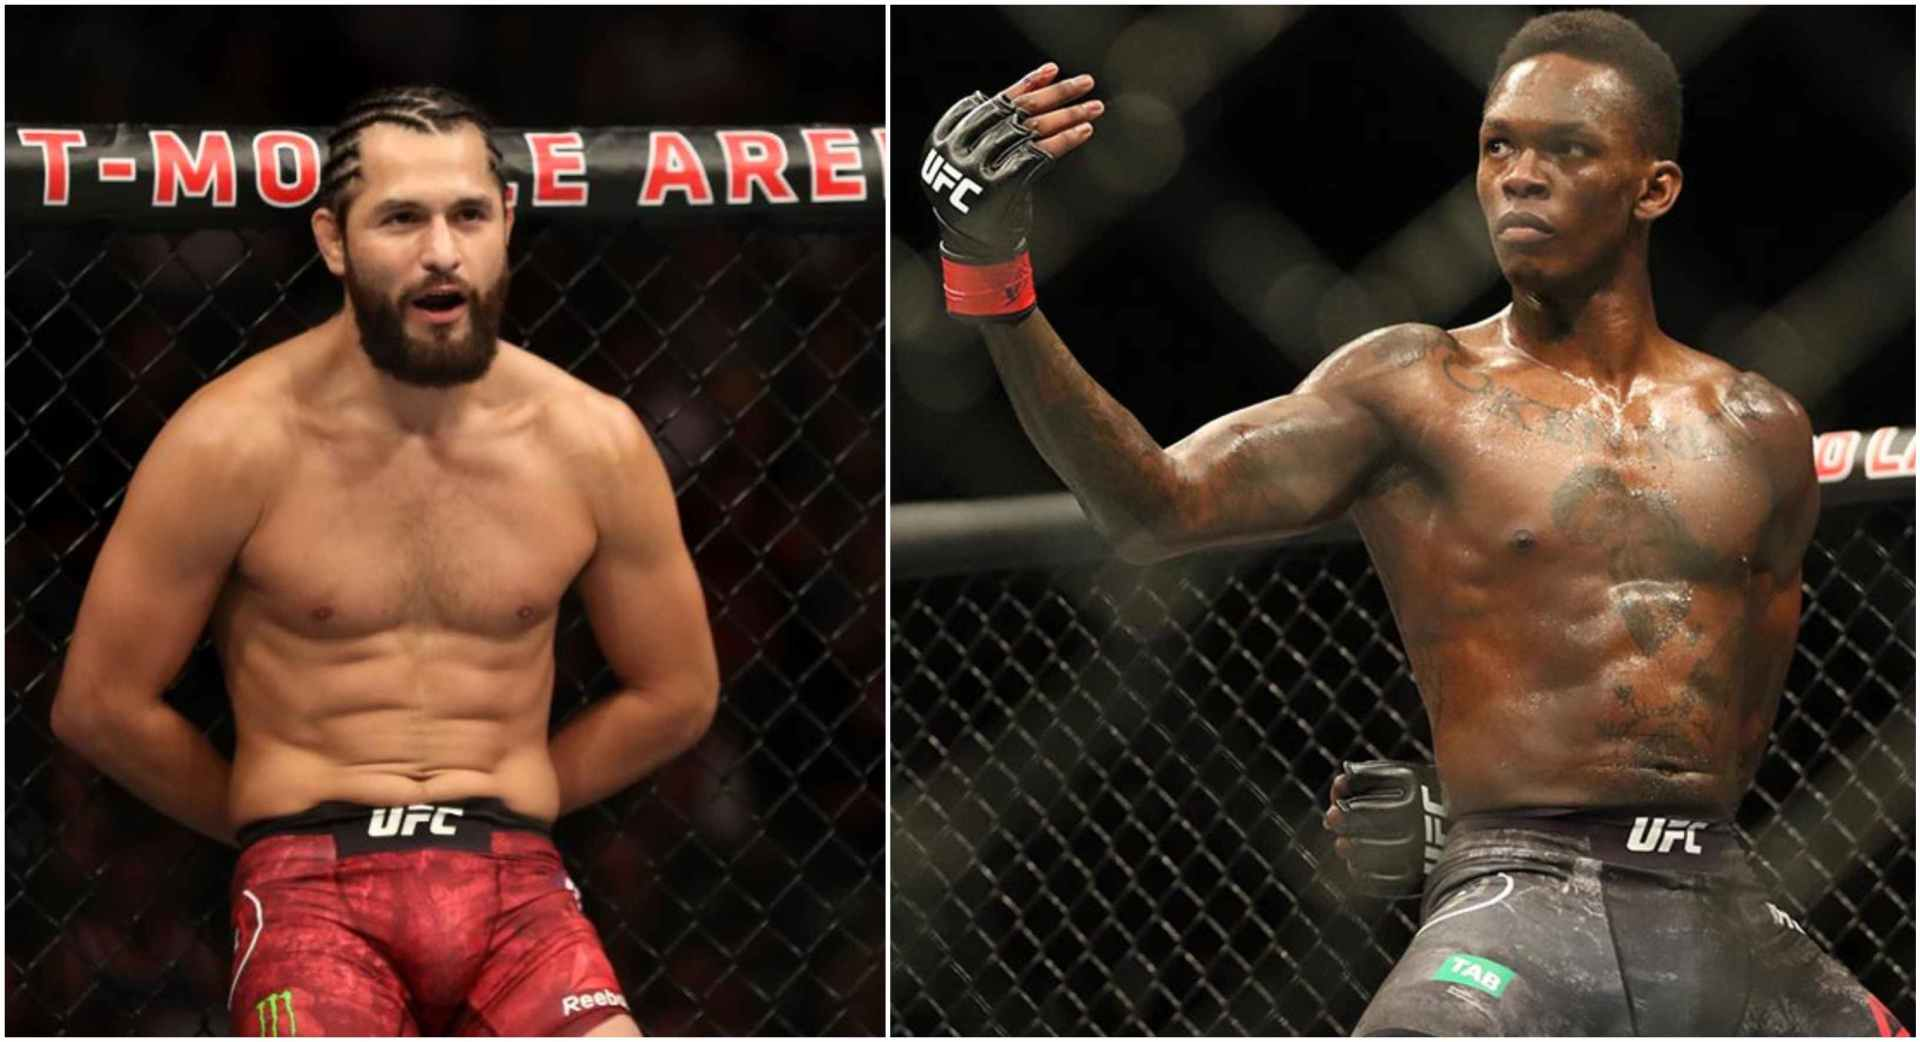 Watch: Jorge Masvidal explains why he has so much respect for Israel Adesanya - Masvidal